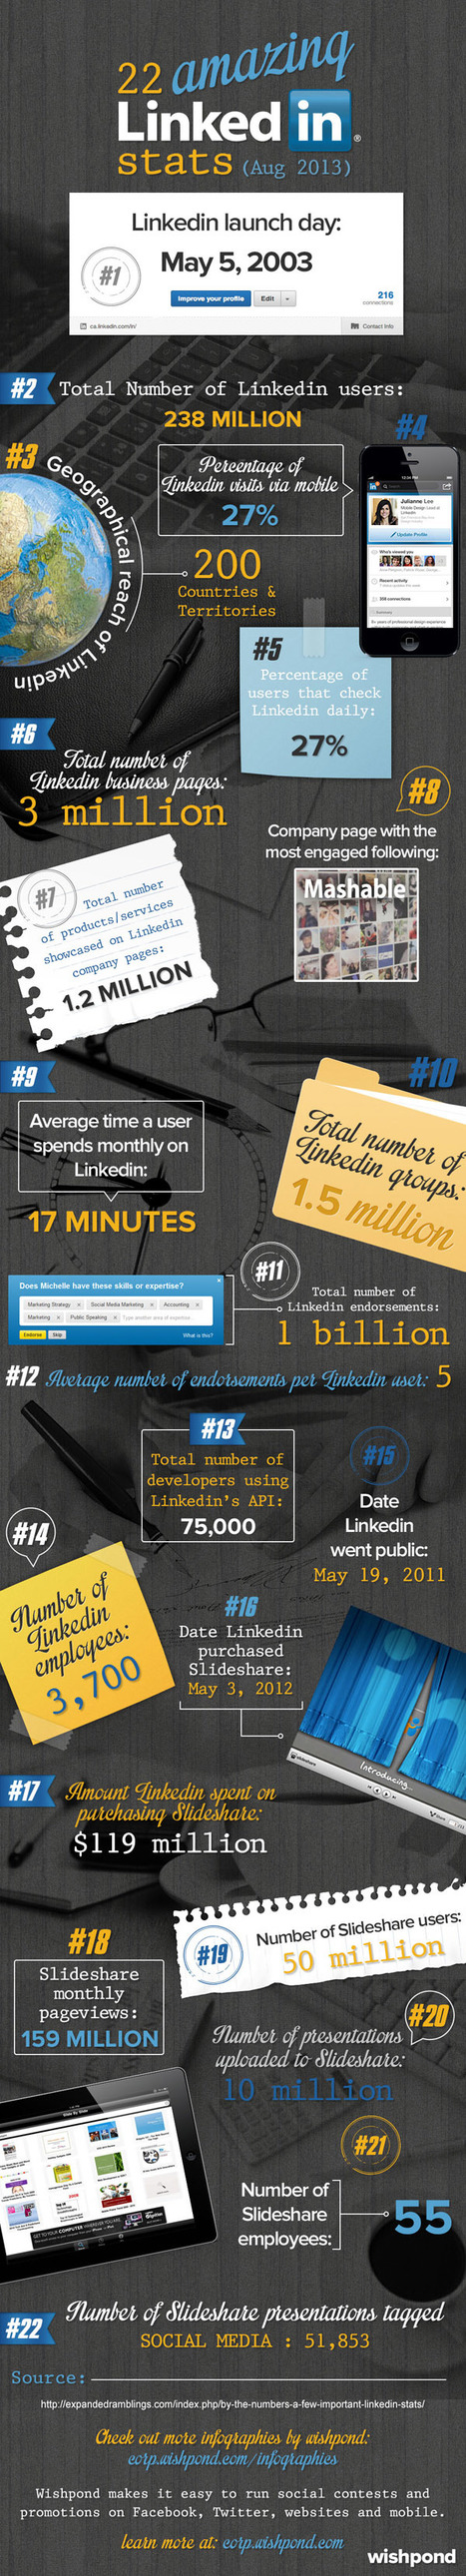 22 Amazing LinkedIn Facts [INFOGRAPHIC] | Sizzlin' News | Scoop.it